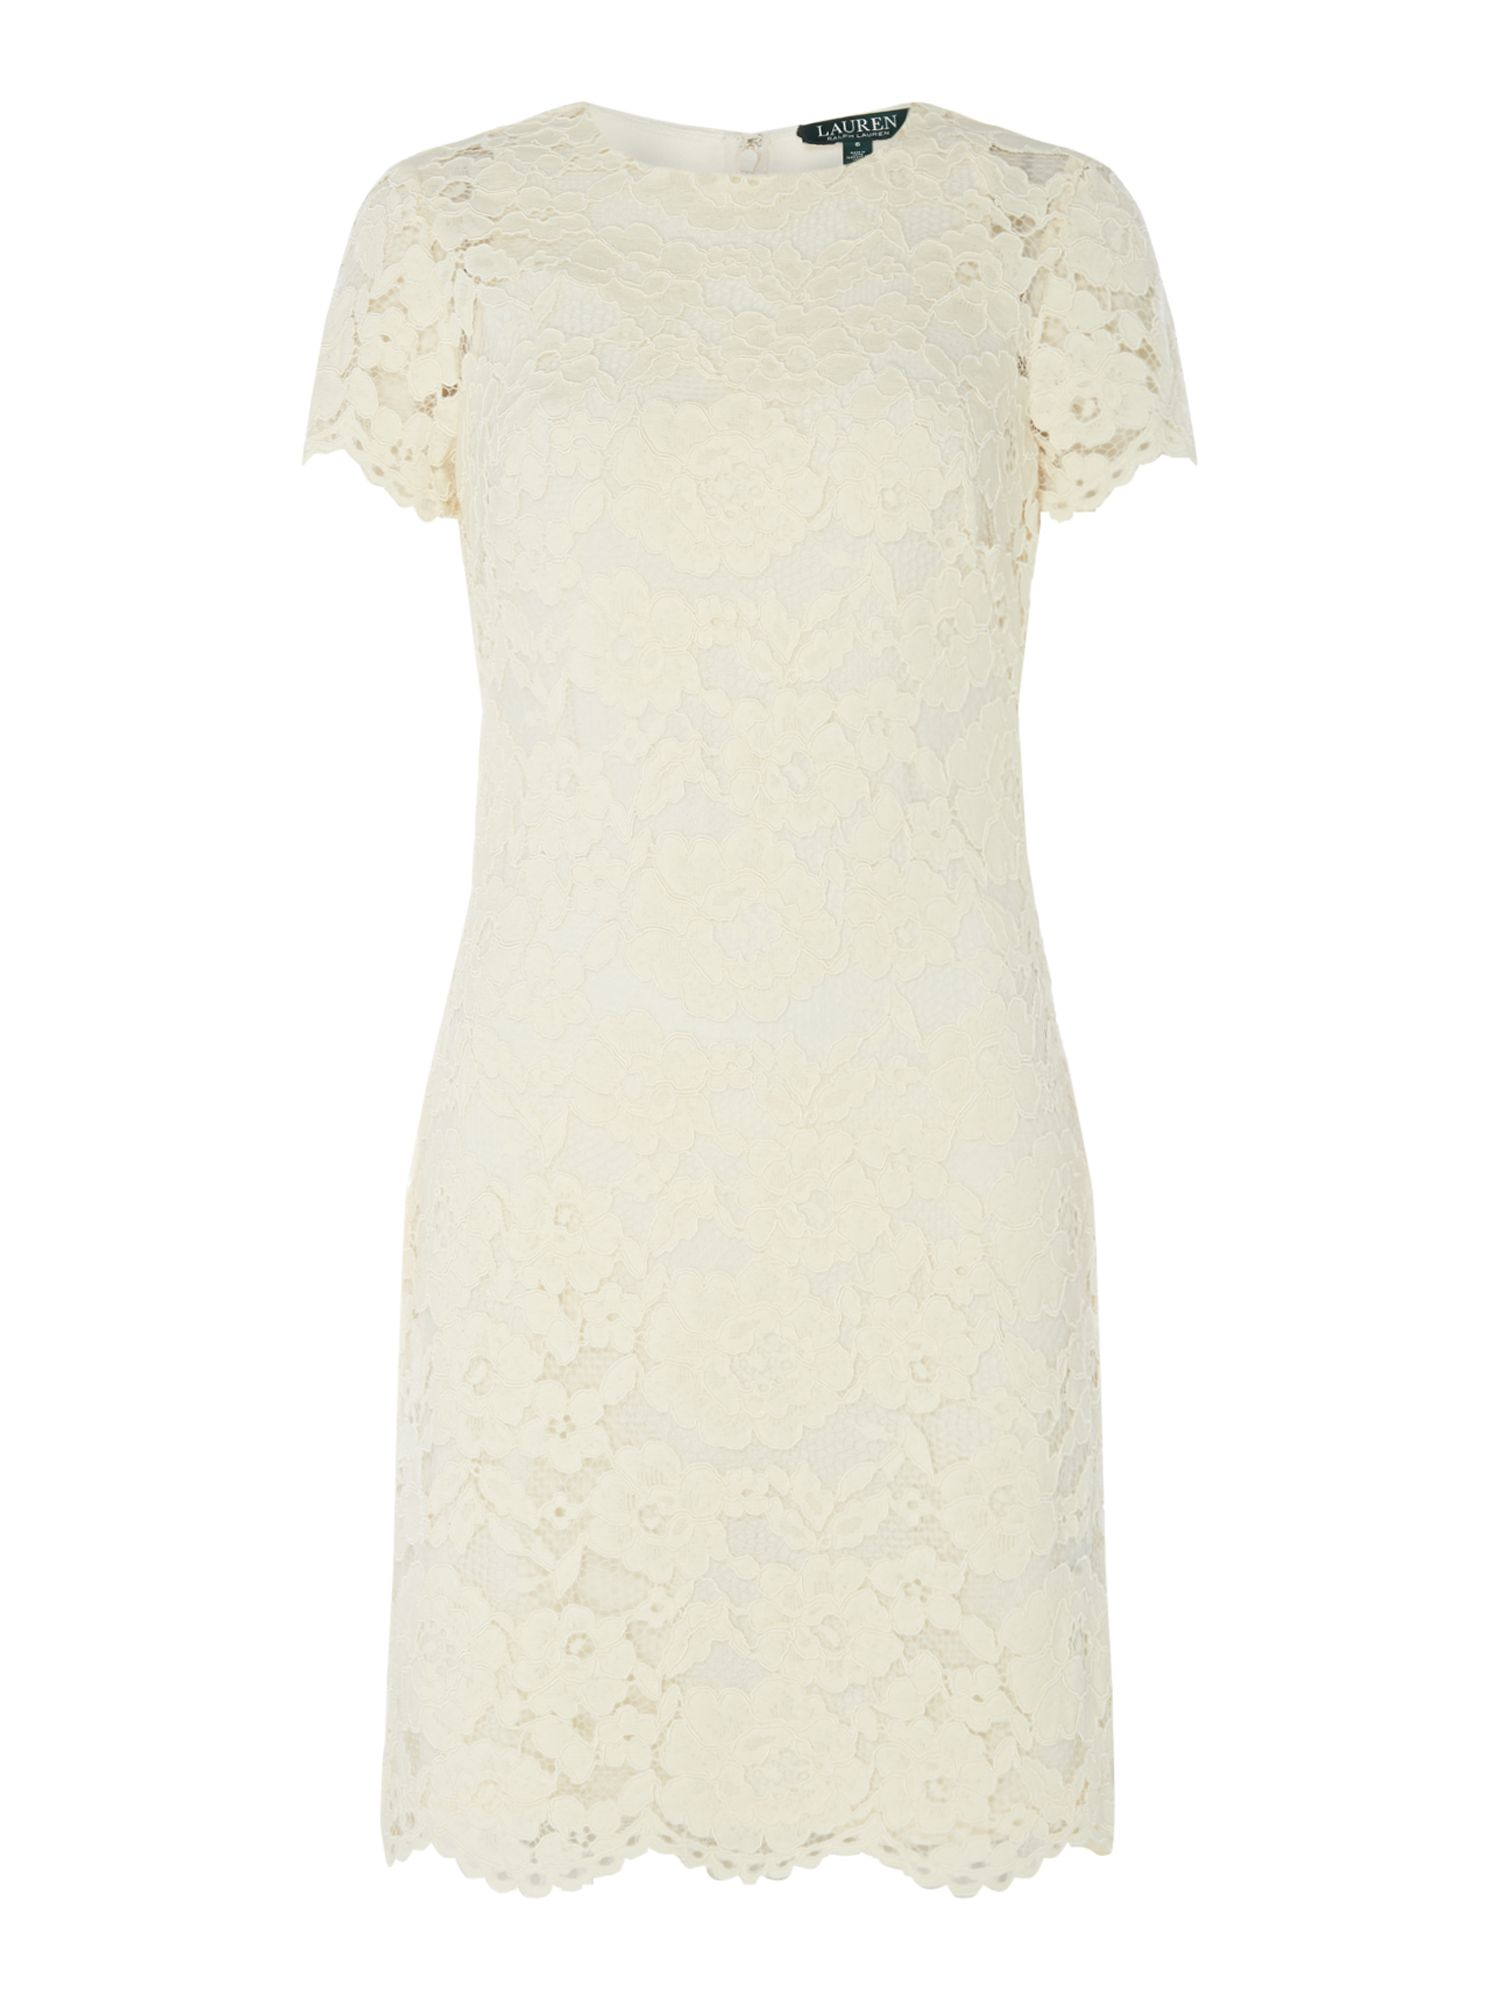 Lauren Ralph Lauren Short sleeve lace detail dress ...